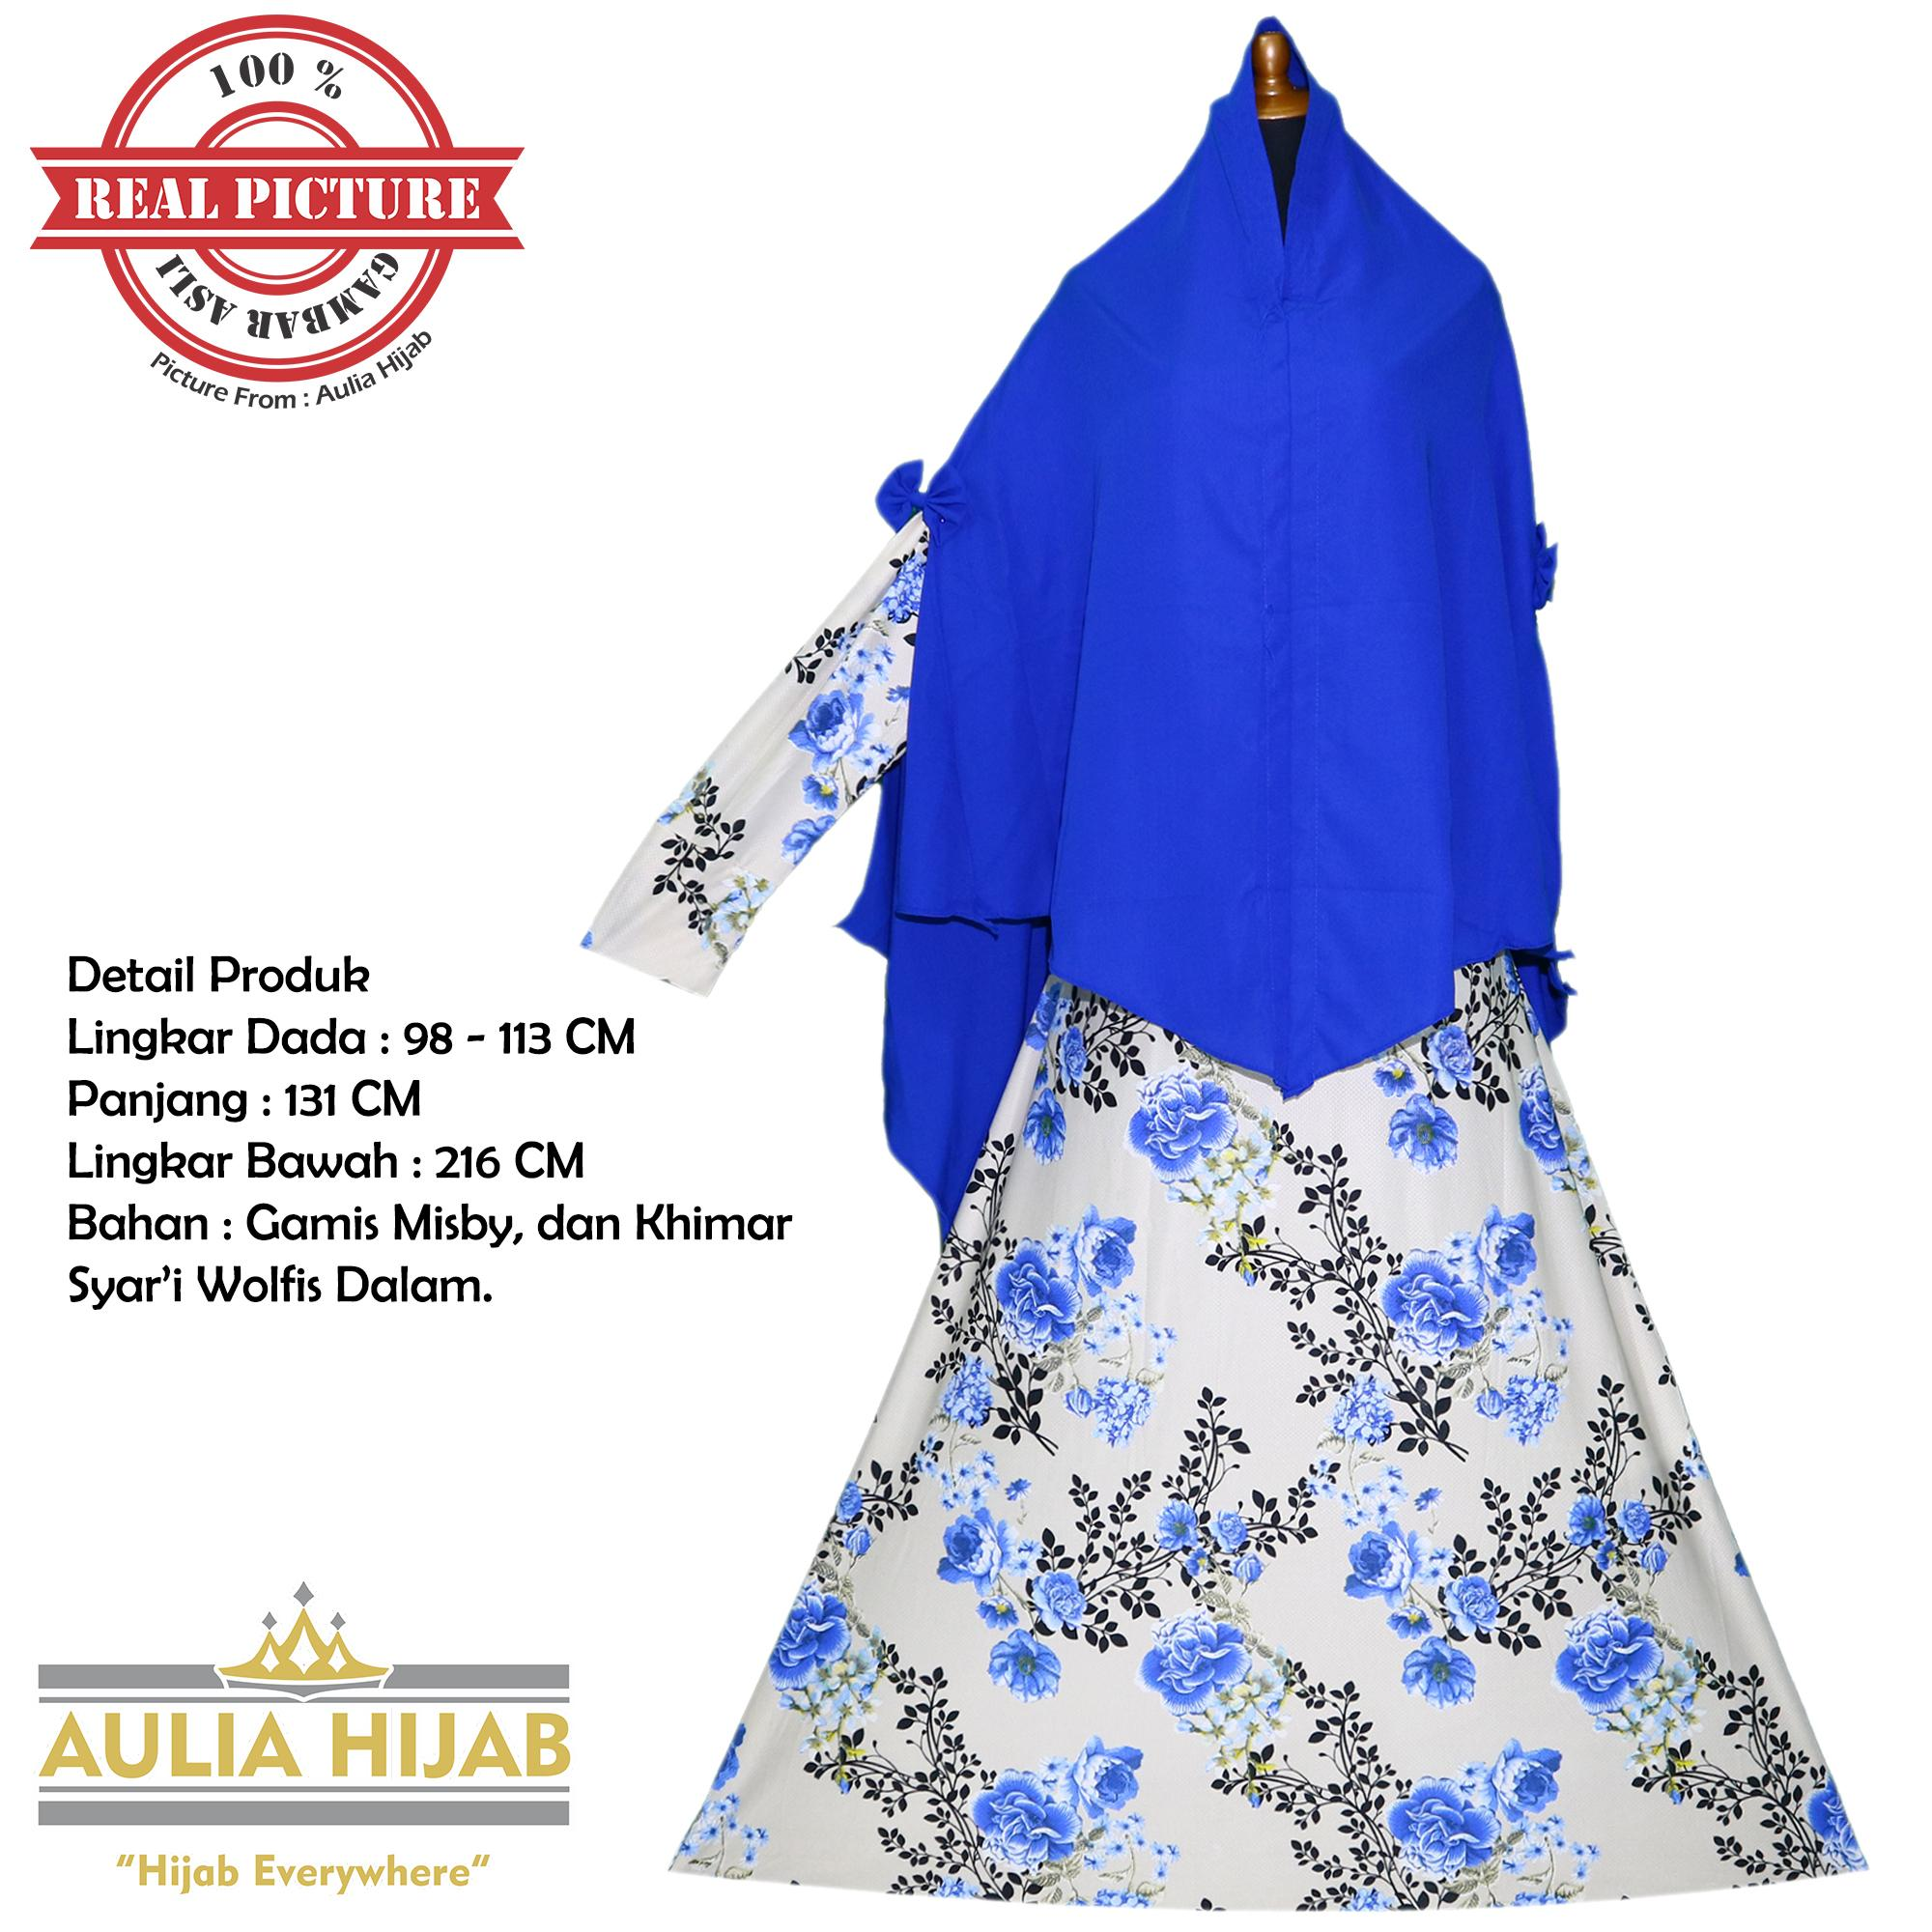 Aulia Hijab - New Queen Syar'i INCLUDE KHIMAR JUMBO/Gamis Syar'i/Gamis Misby/Gamis Wolfis/Gamis Las